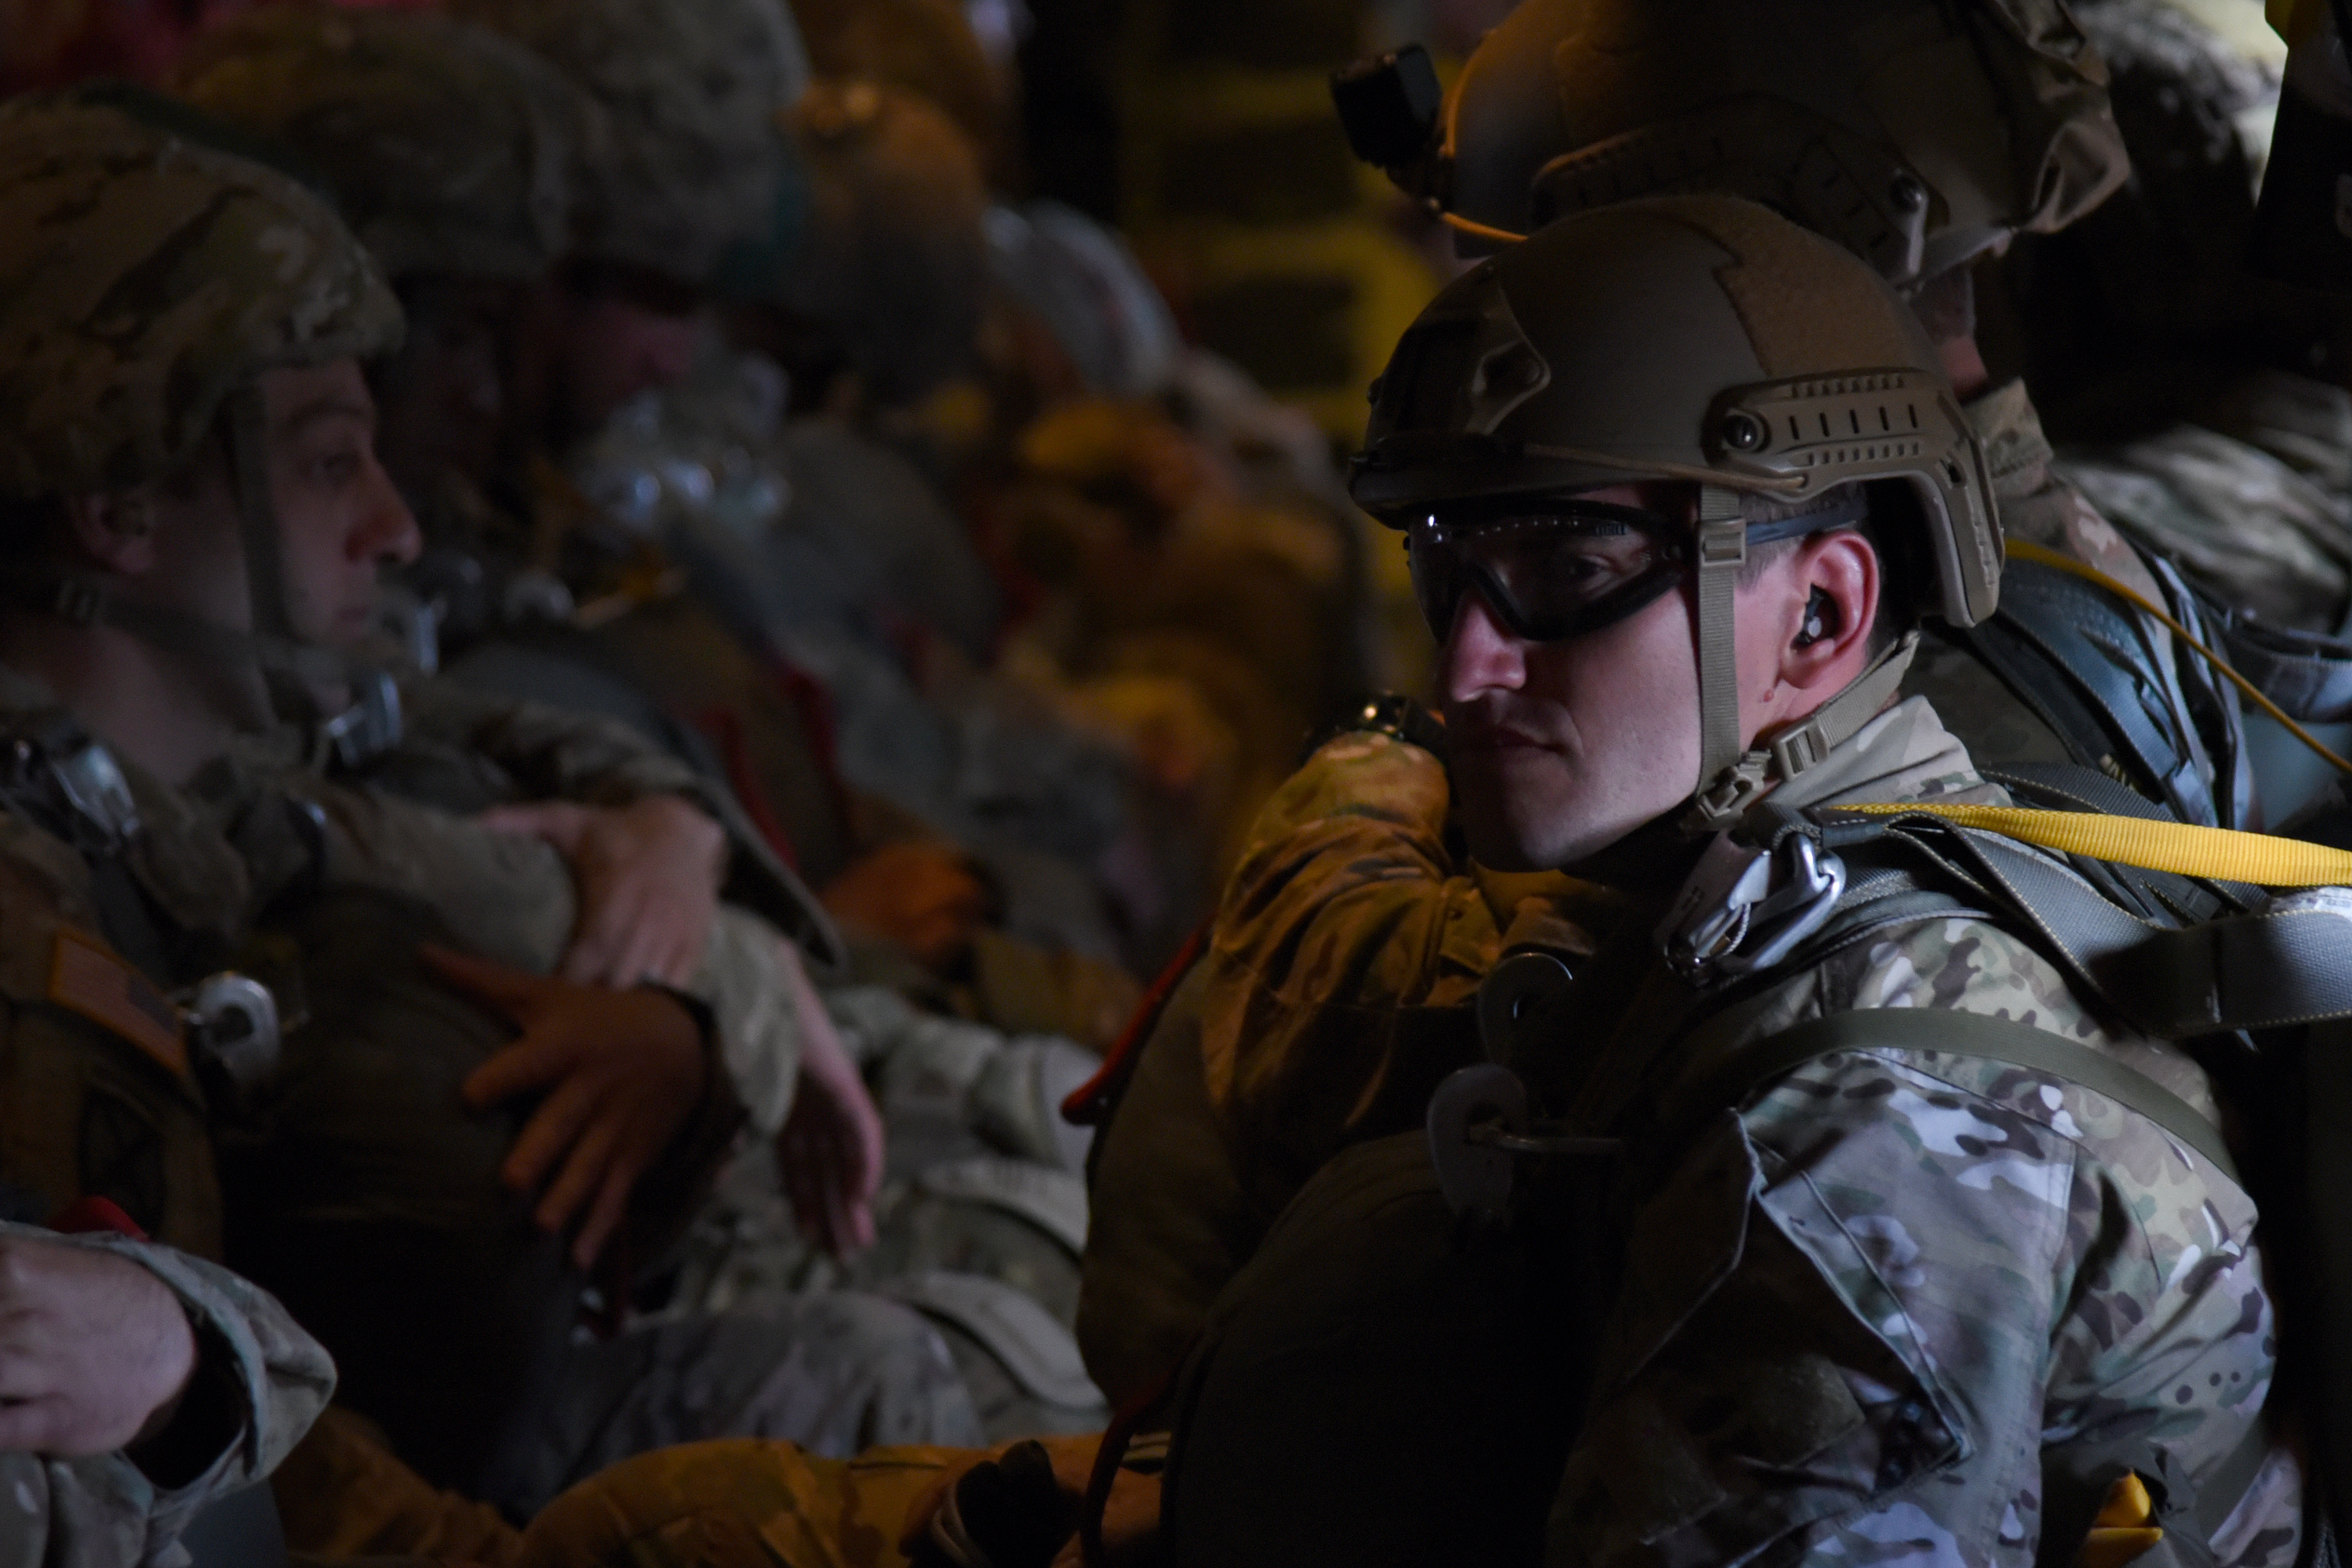 Paratroopers await their jump from an 815th Airlift Squadron C-130J over Normandy, France. This event commemorates the 73rd anniversary of D-Day, the largest multi-national amphibious landing and operational military airdrop in history, and highlights the U.S.' steadfast commitment to European allies and partners. Overall, approximately 400 U.S. service members from units in Europe and the U.S. are participating in ceremonial D-Day events from May 31 to June 7, 2017(U.S. Air Force photo by Staff Sgt. Nicholas Monteleone)